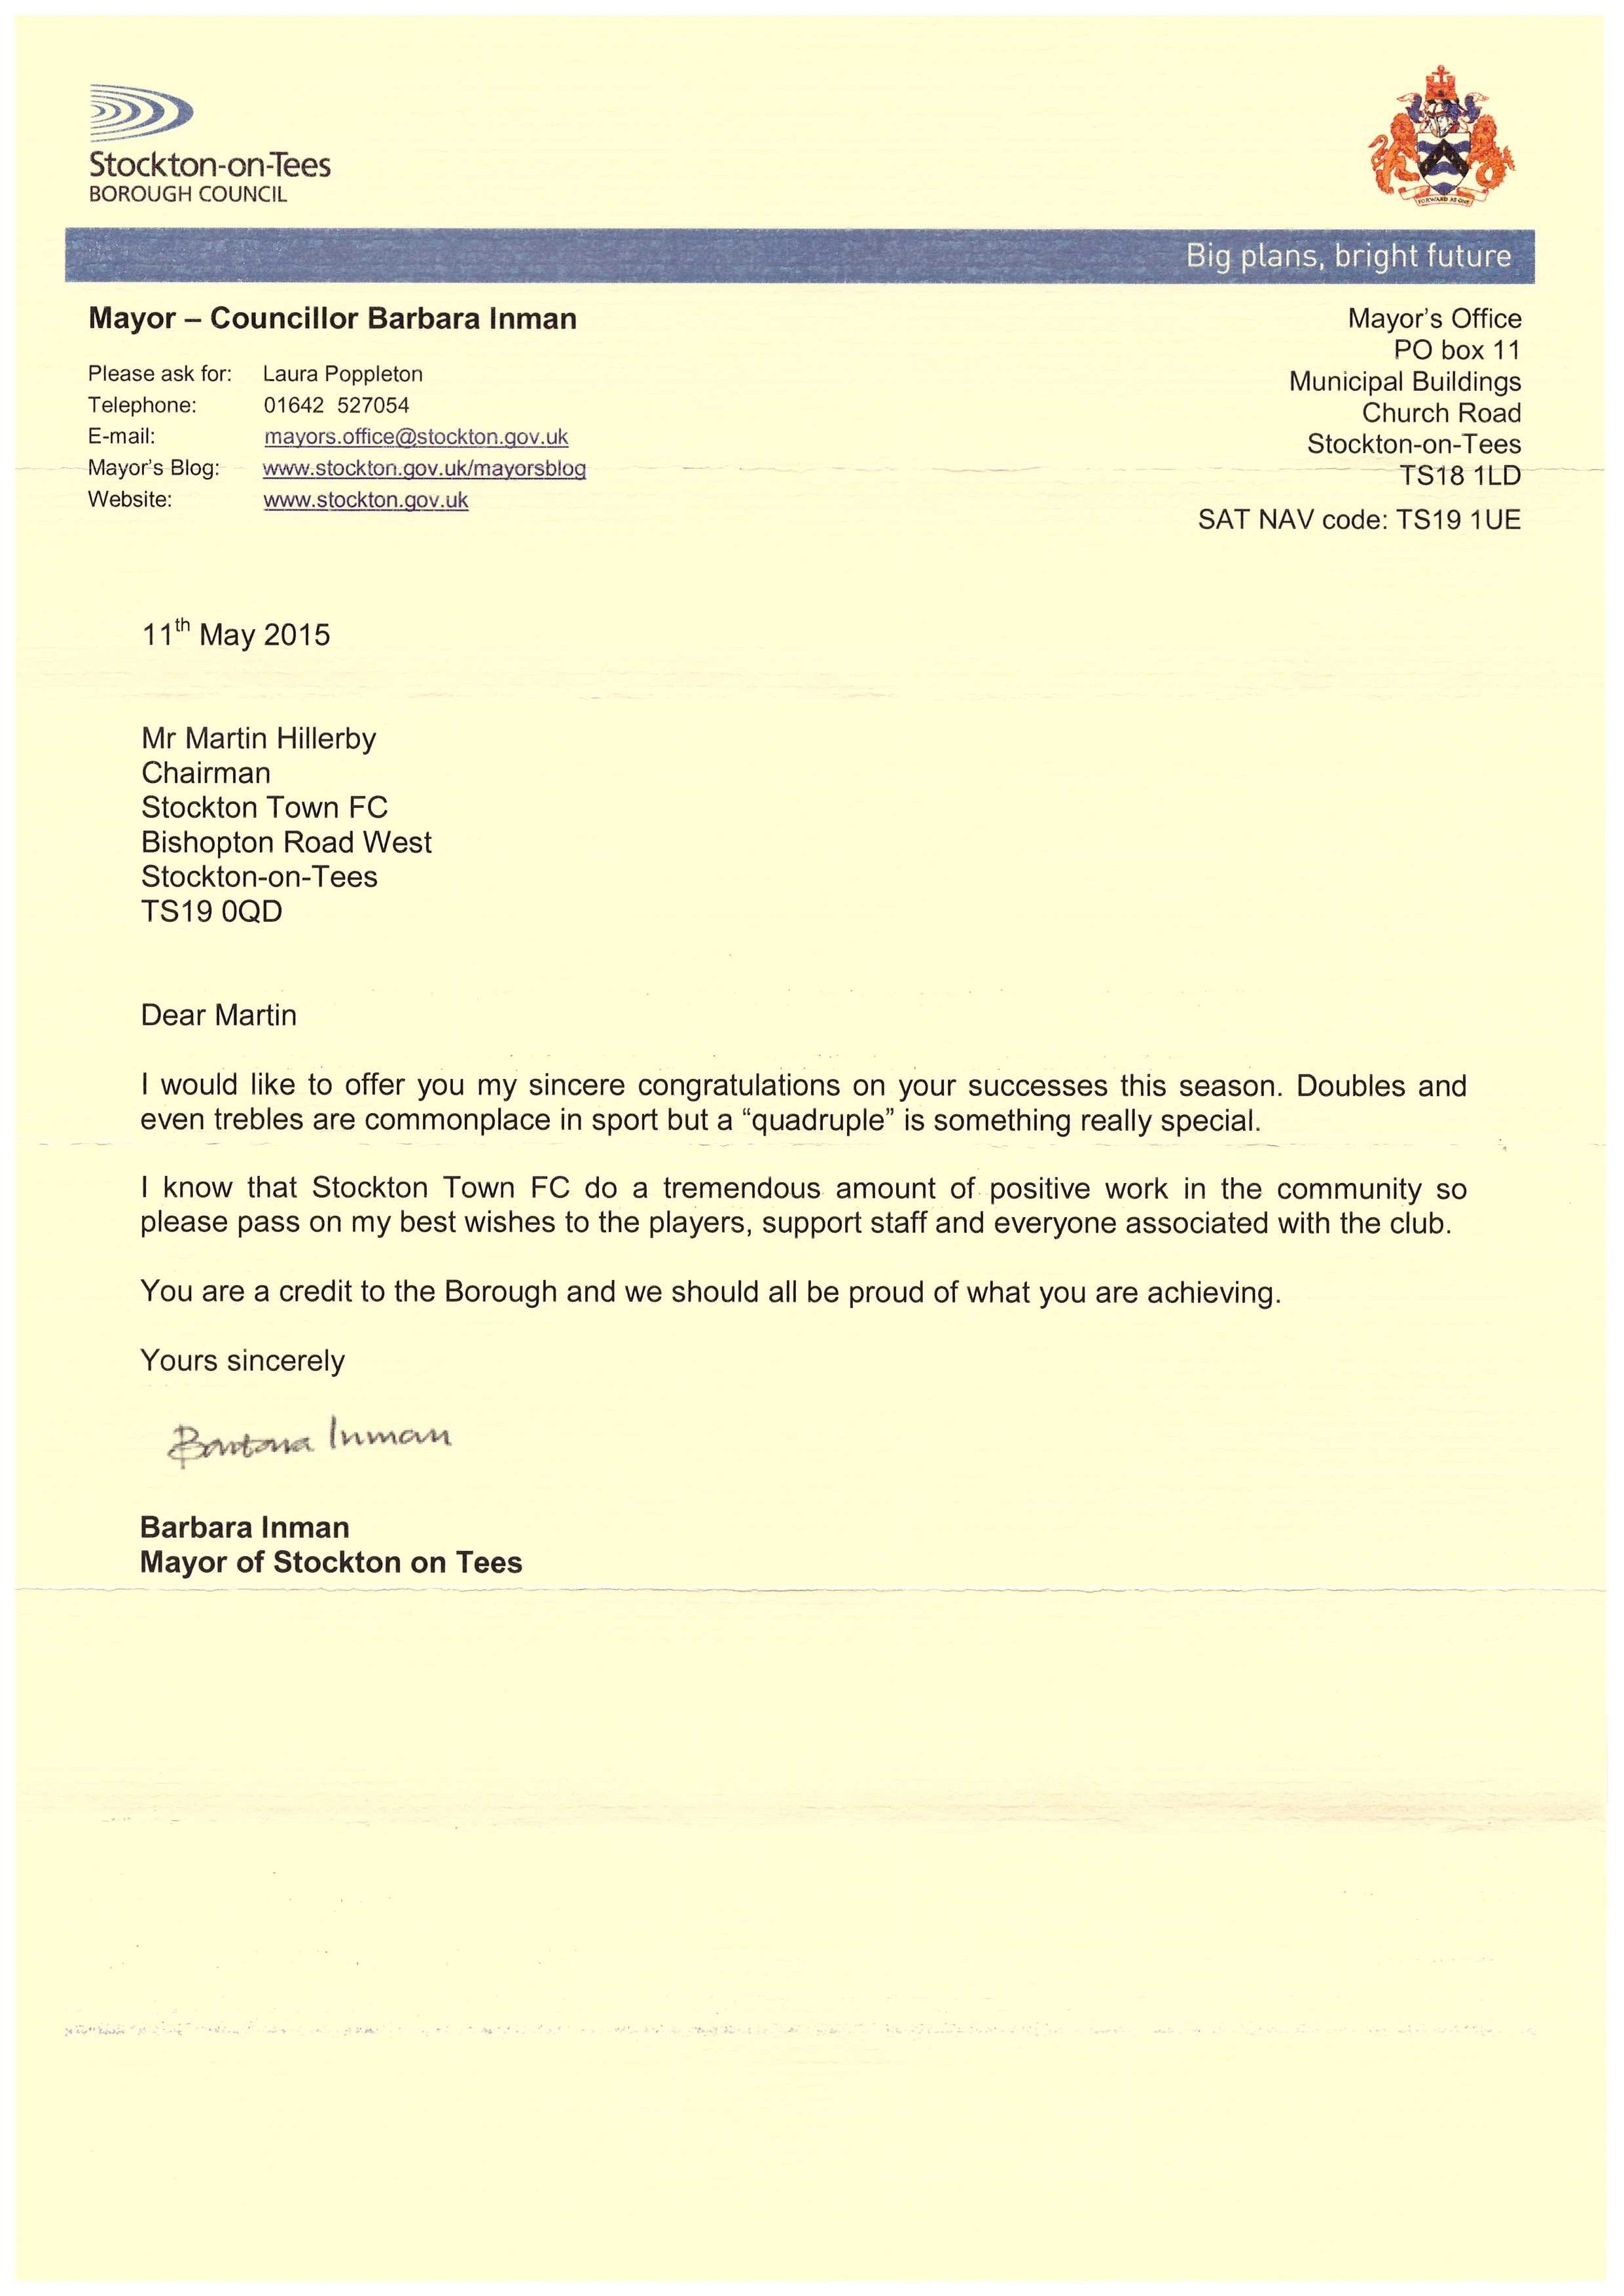 Letter from Mayor